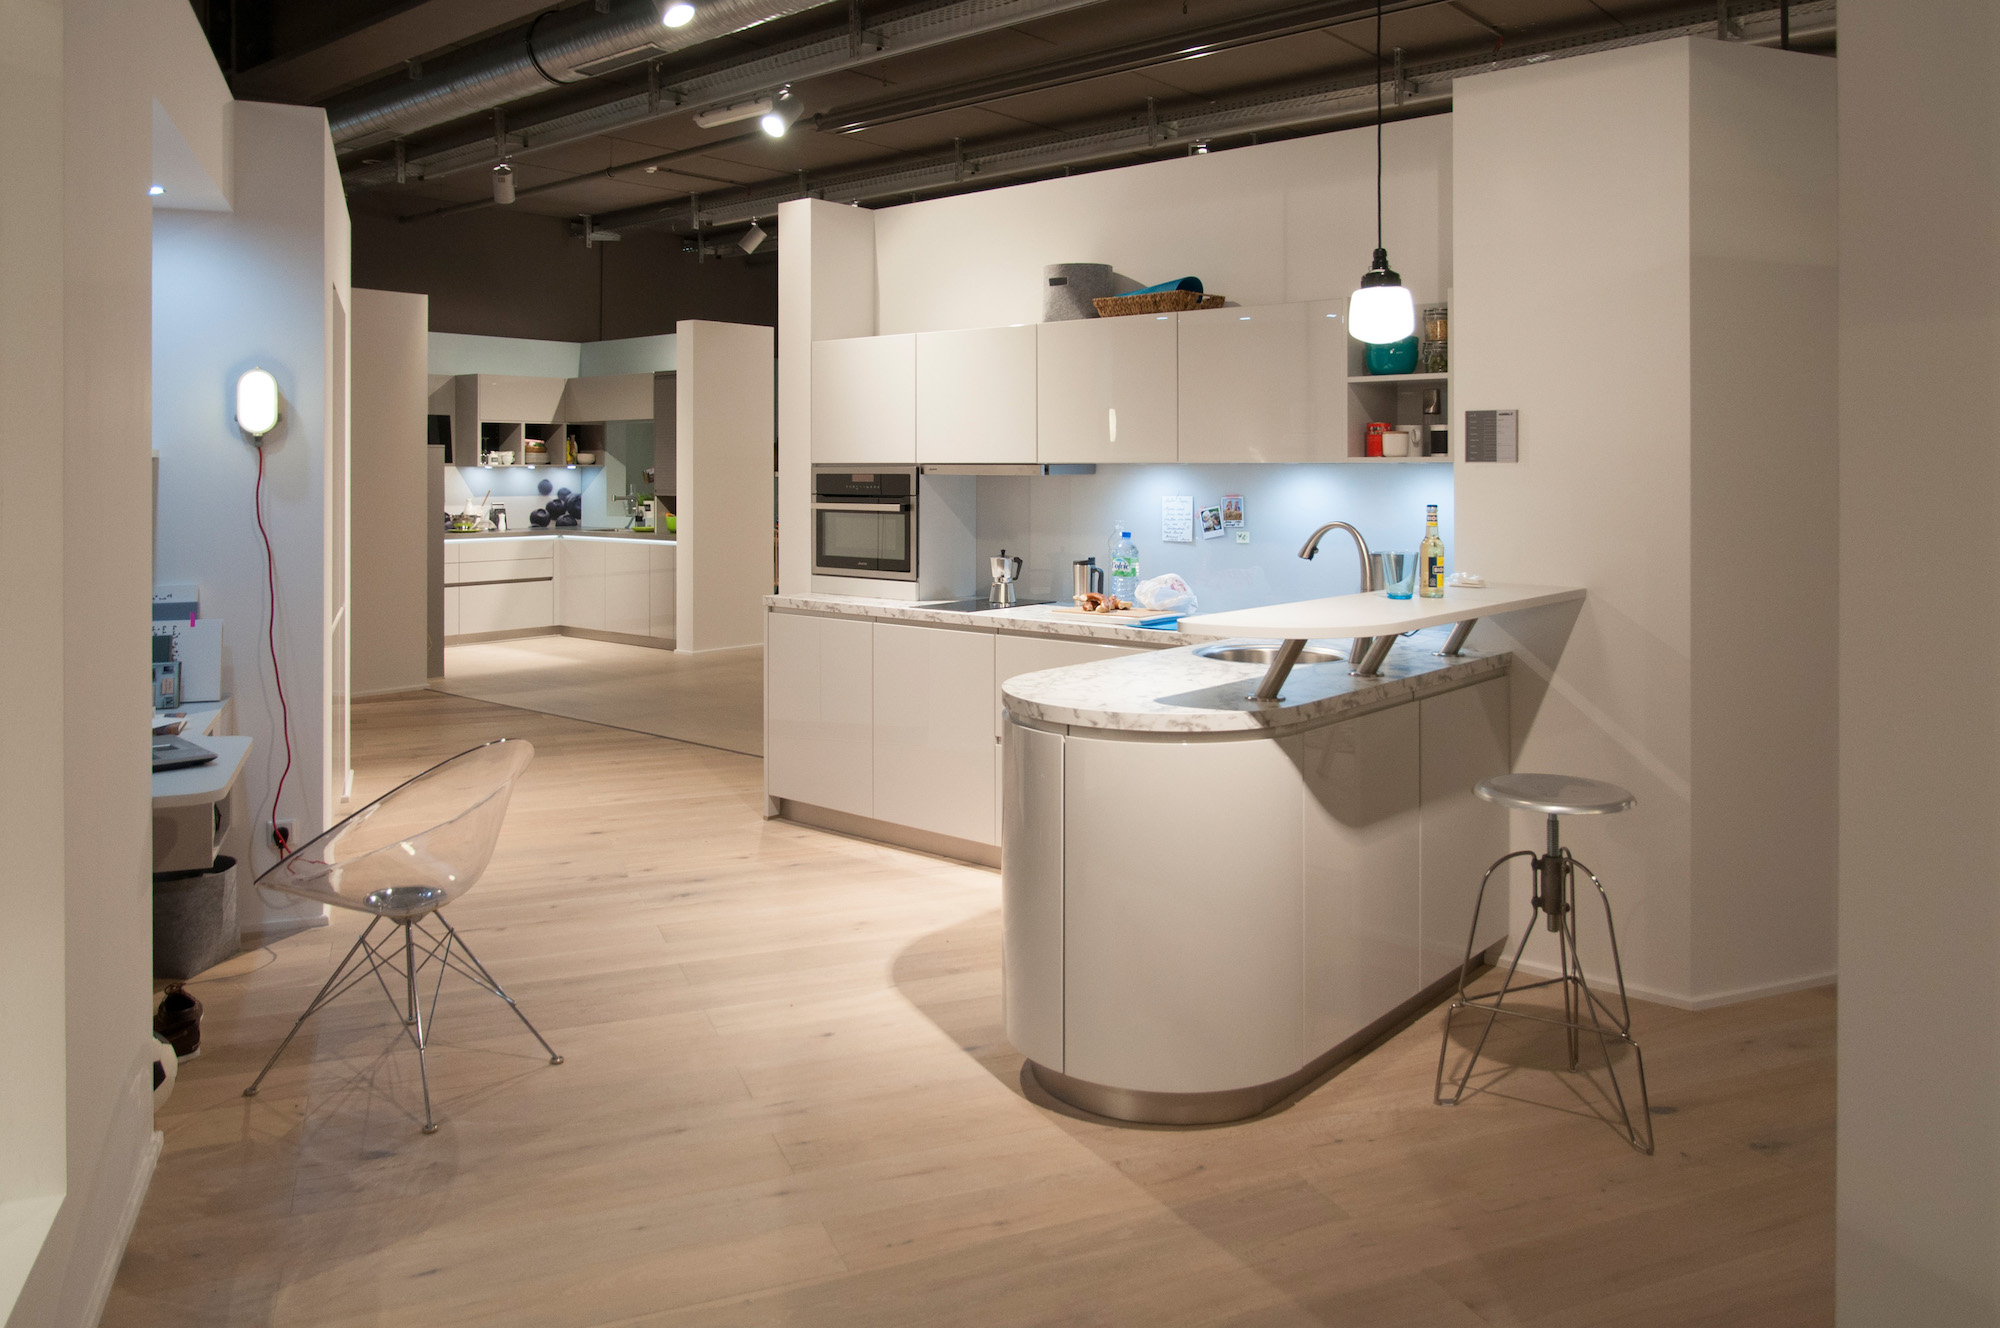 Discover High Quality German Kitchen Manufacturer Schuller Kitchens Russ Deacon